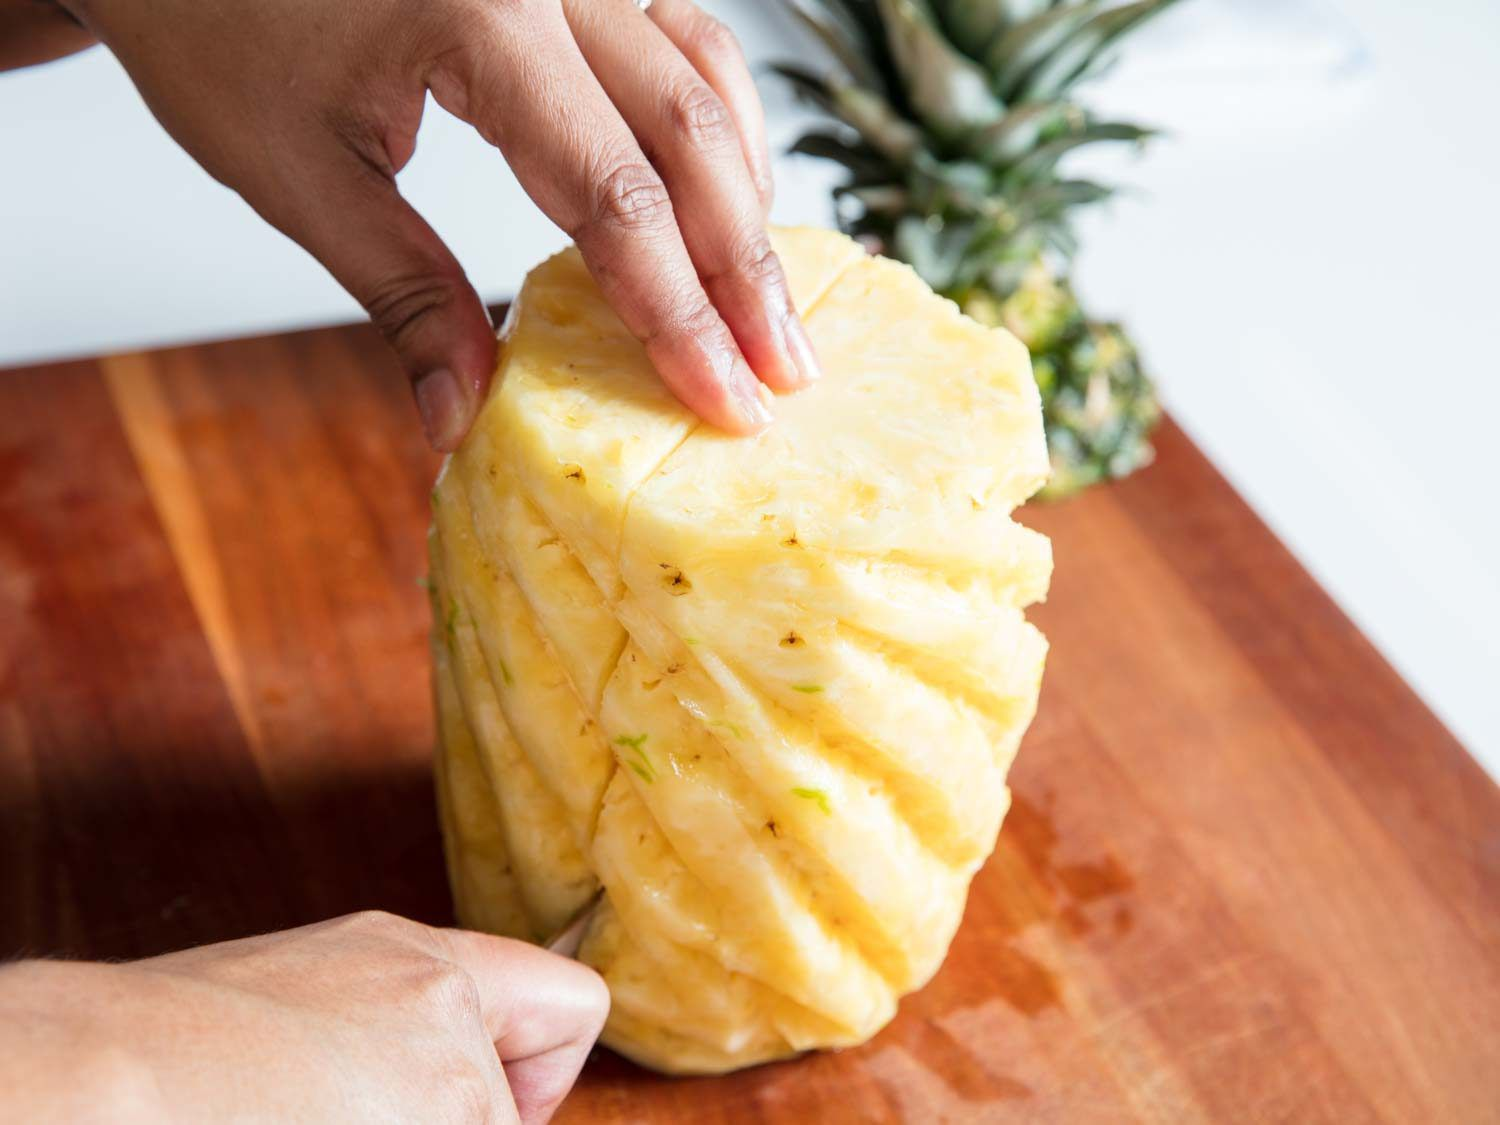 A knife slicing a pineapple in half.